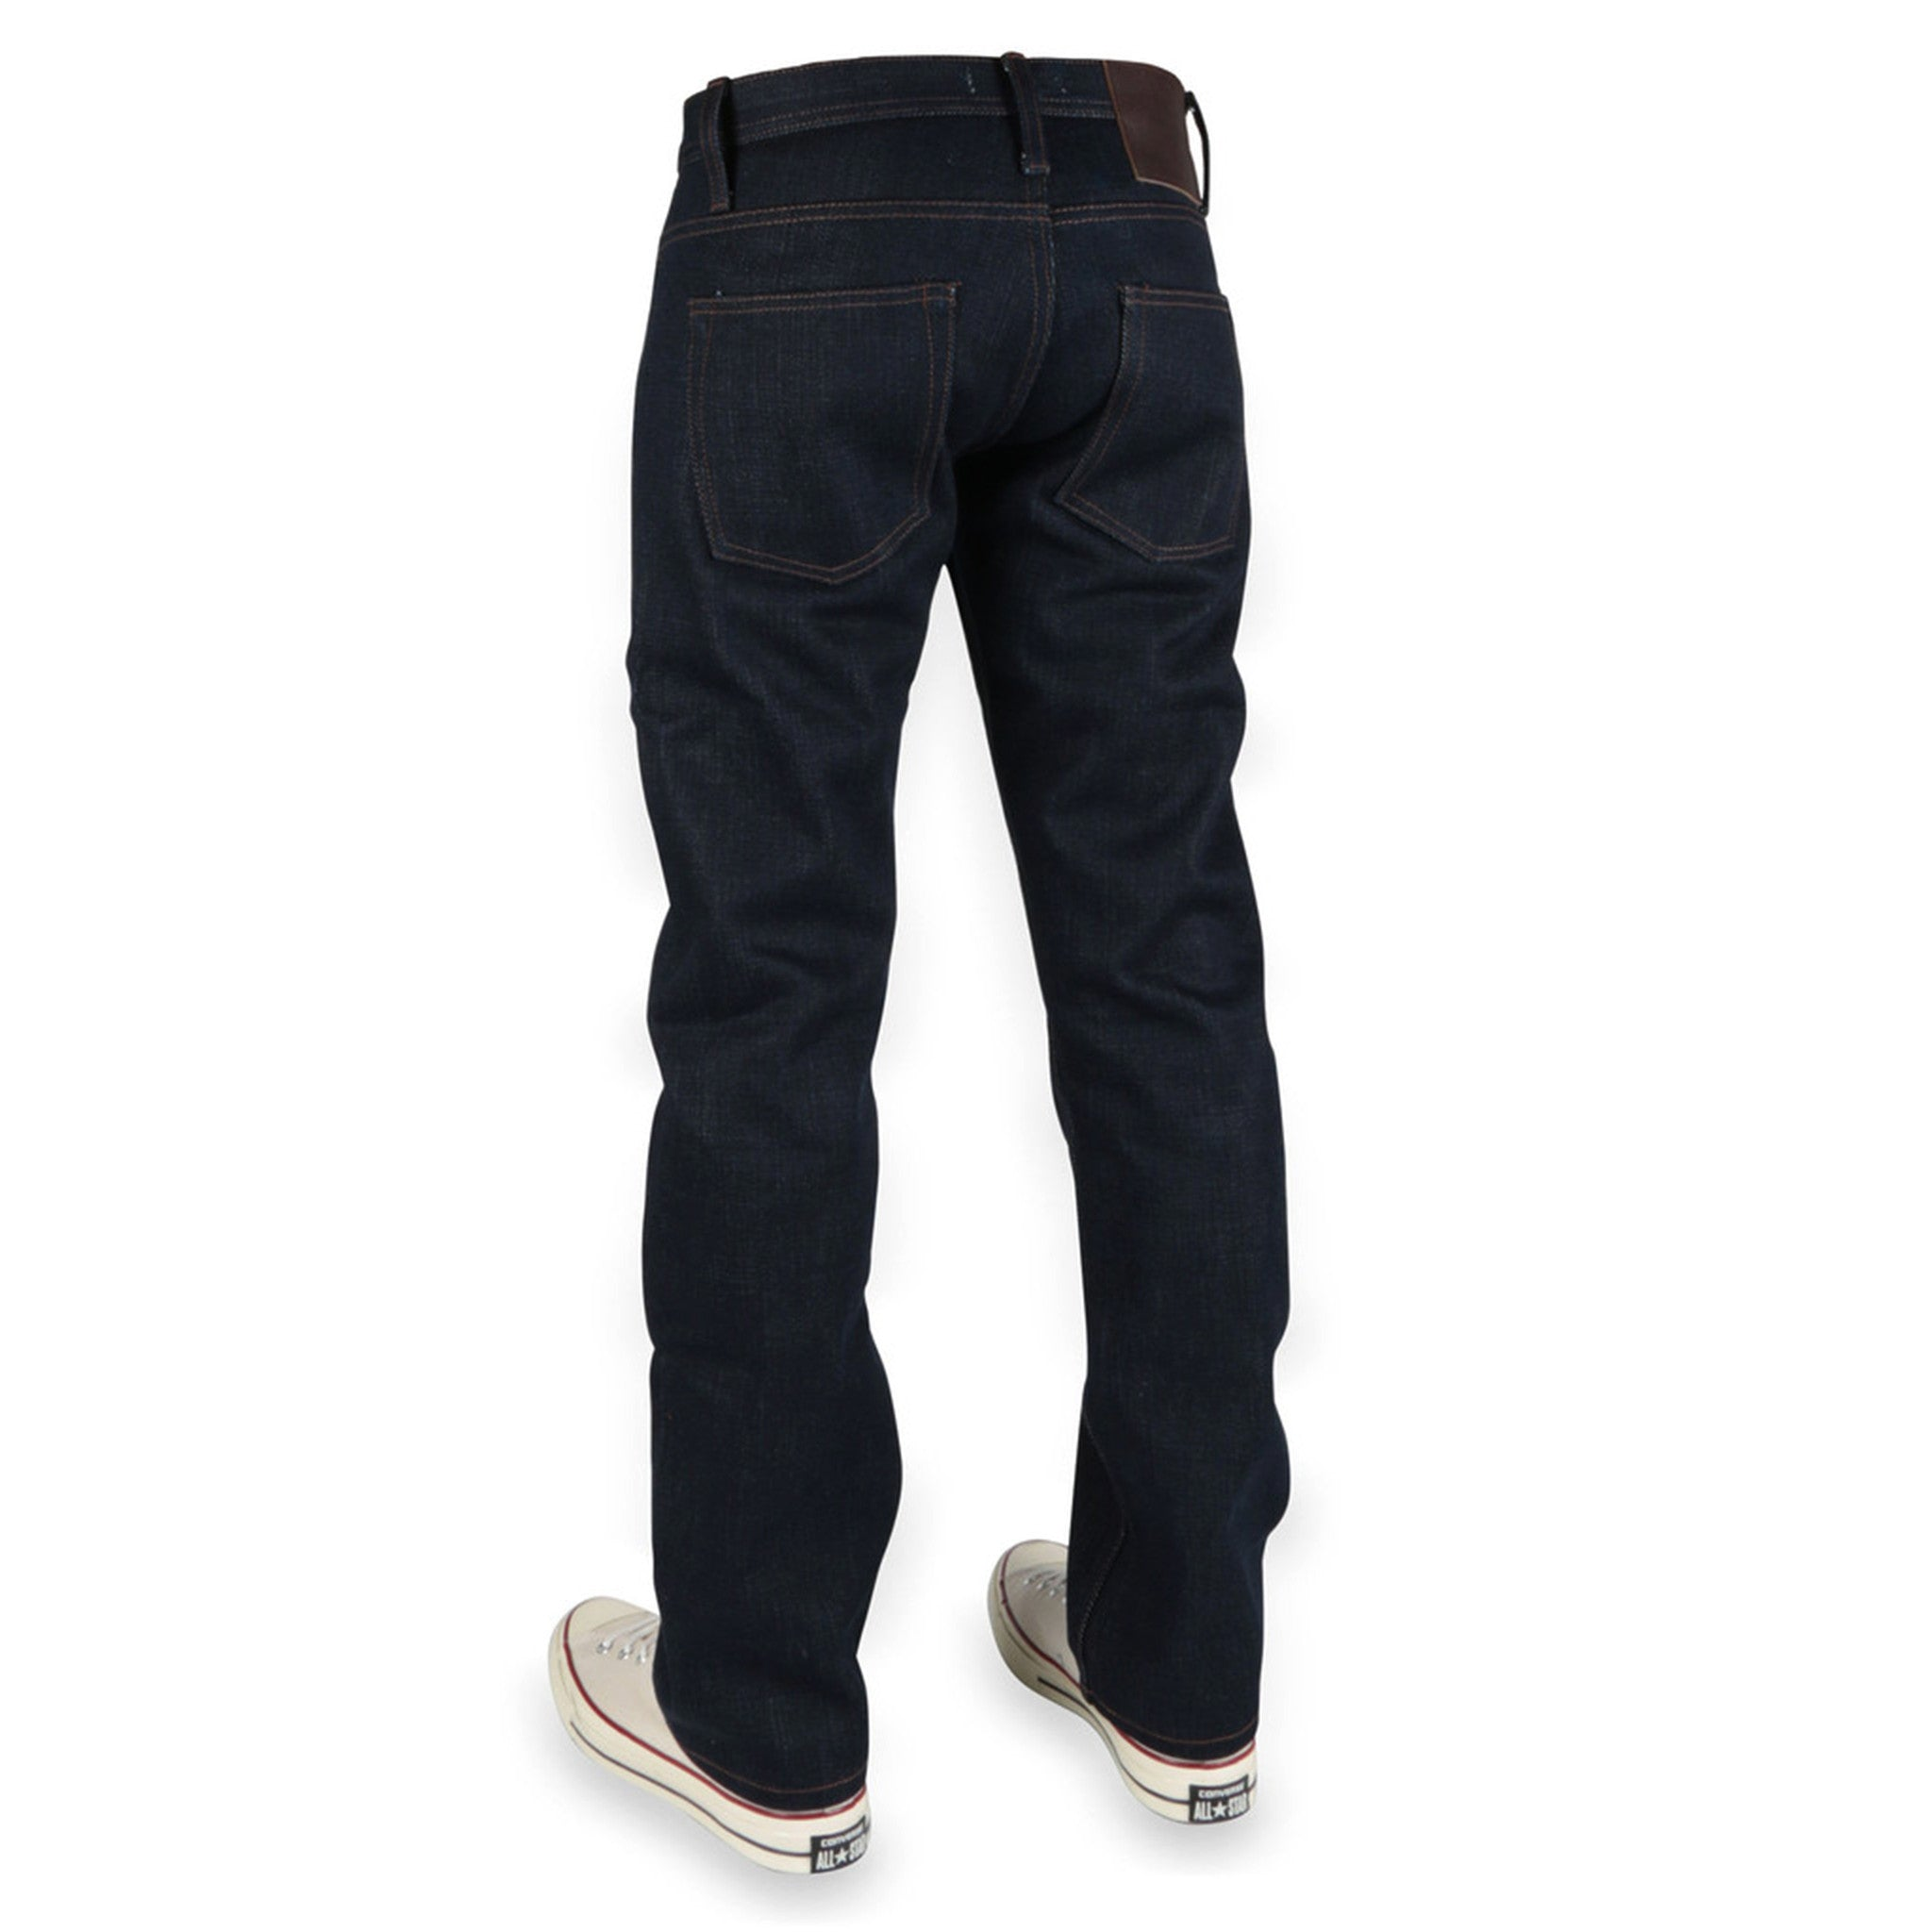 Unbranded Brand- UB321 Straight Fit Heavyweight 21oz Indigo Selvedge